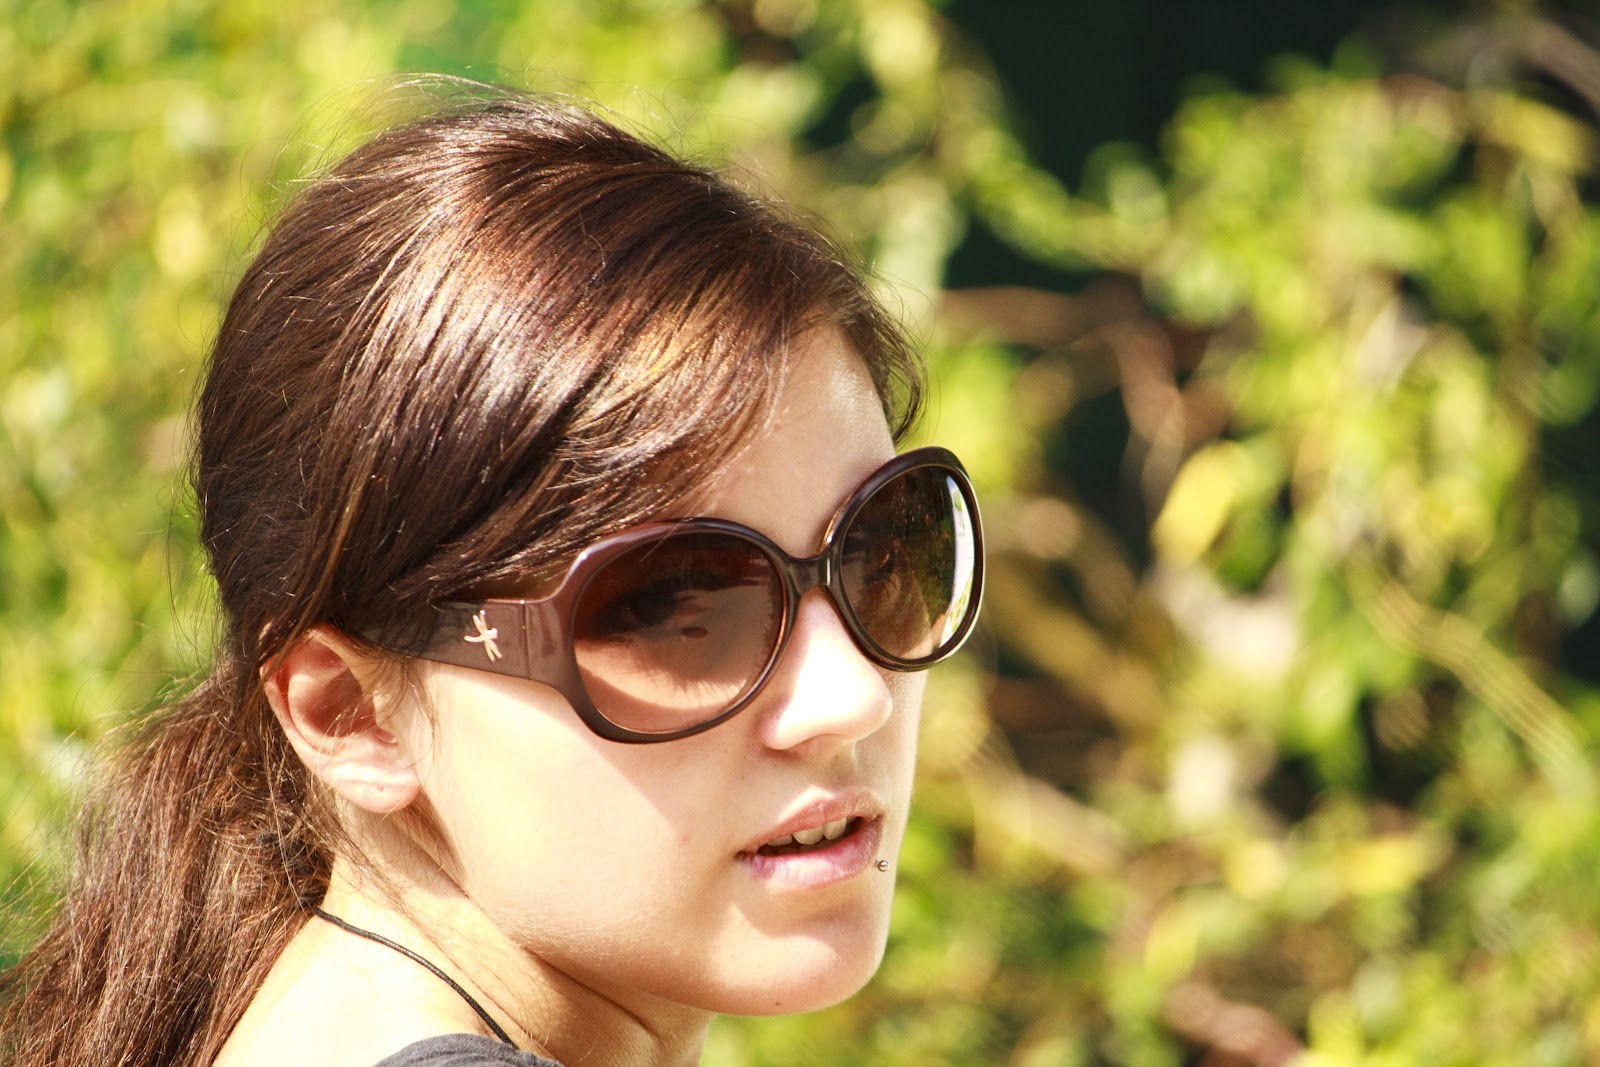 Young_woman_-sunglasses_-visiting_Zoo_Vienna-7Aug2009a.jpg